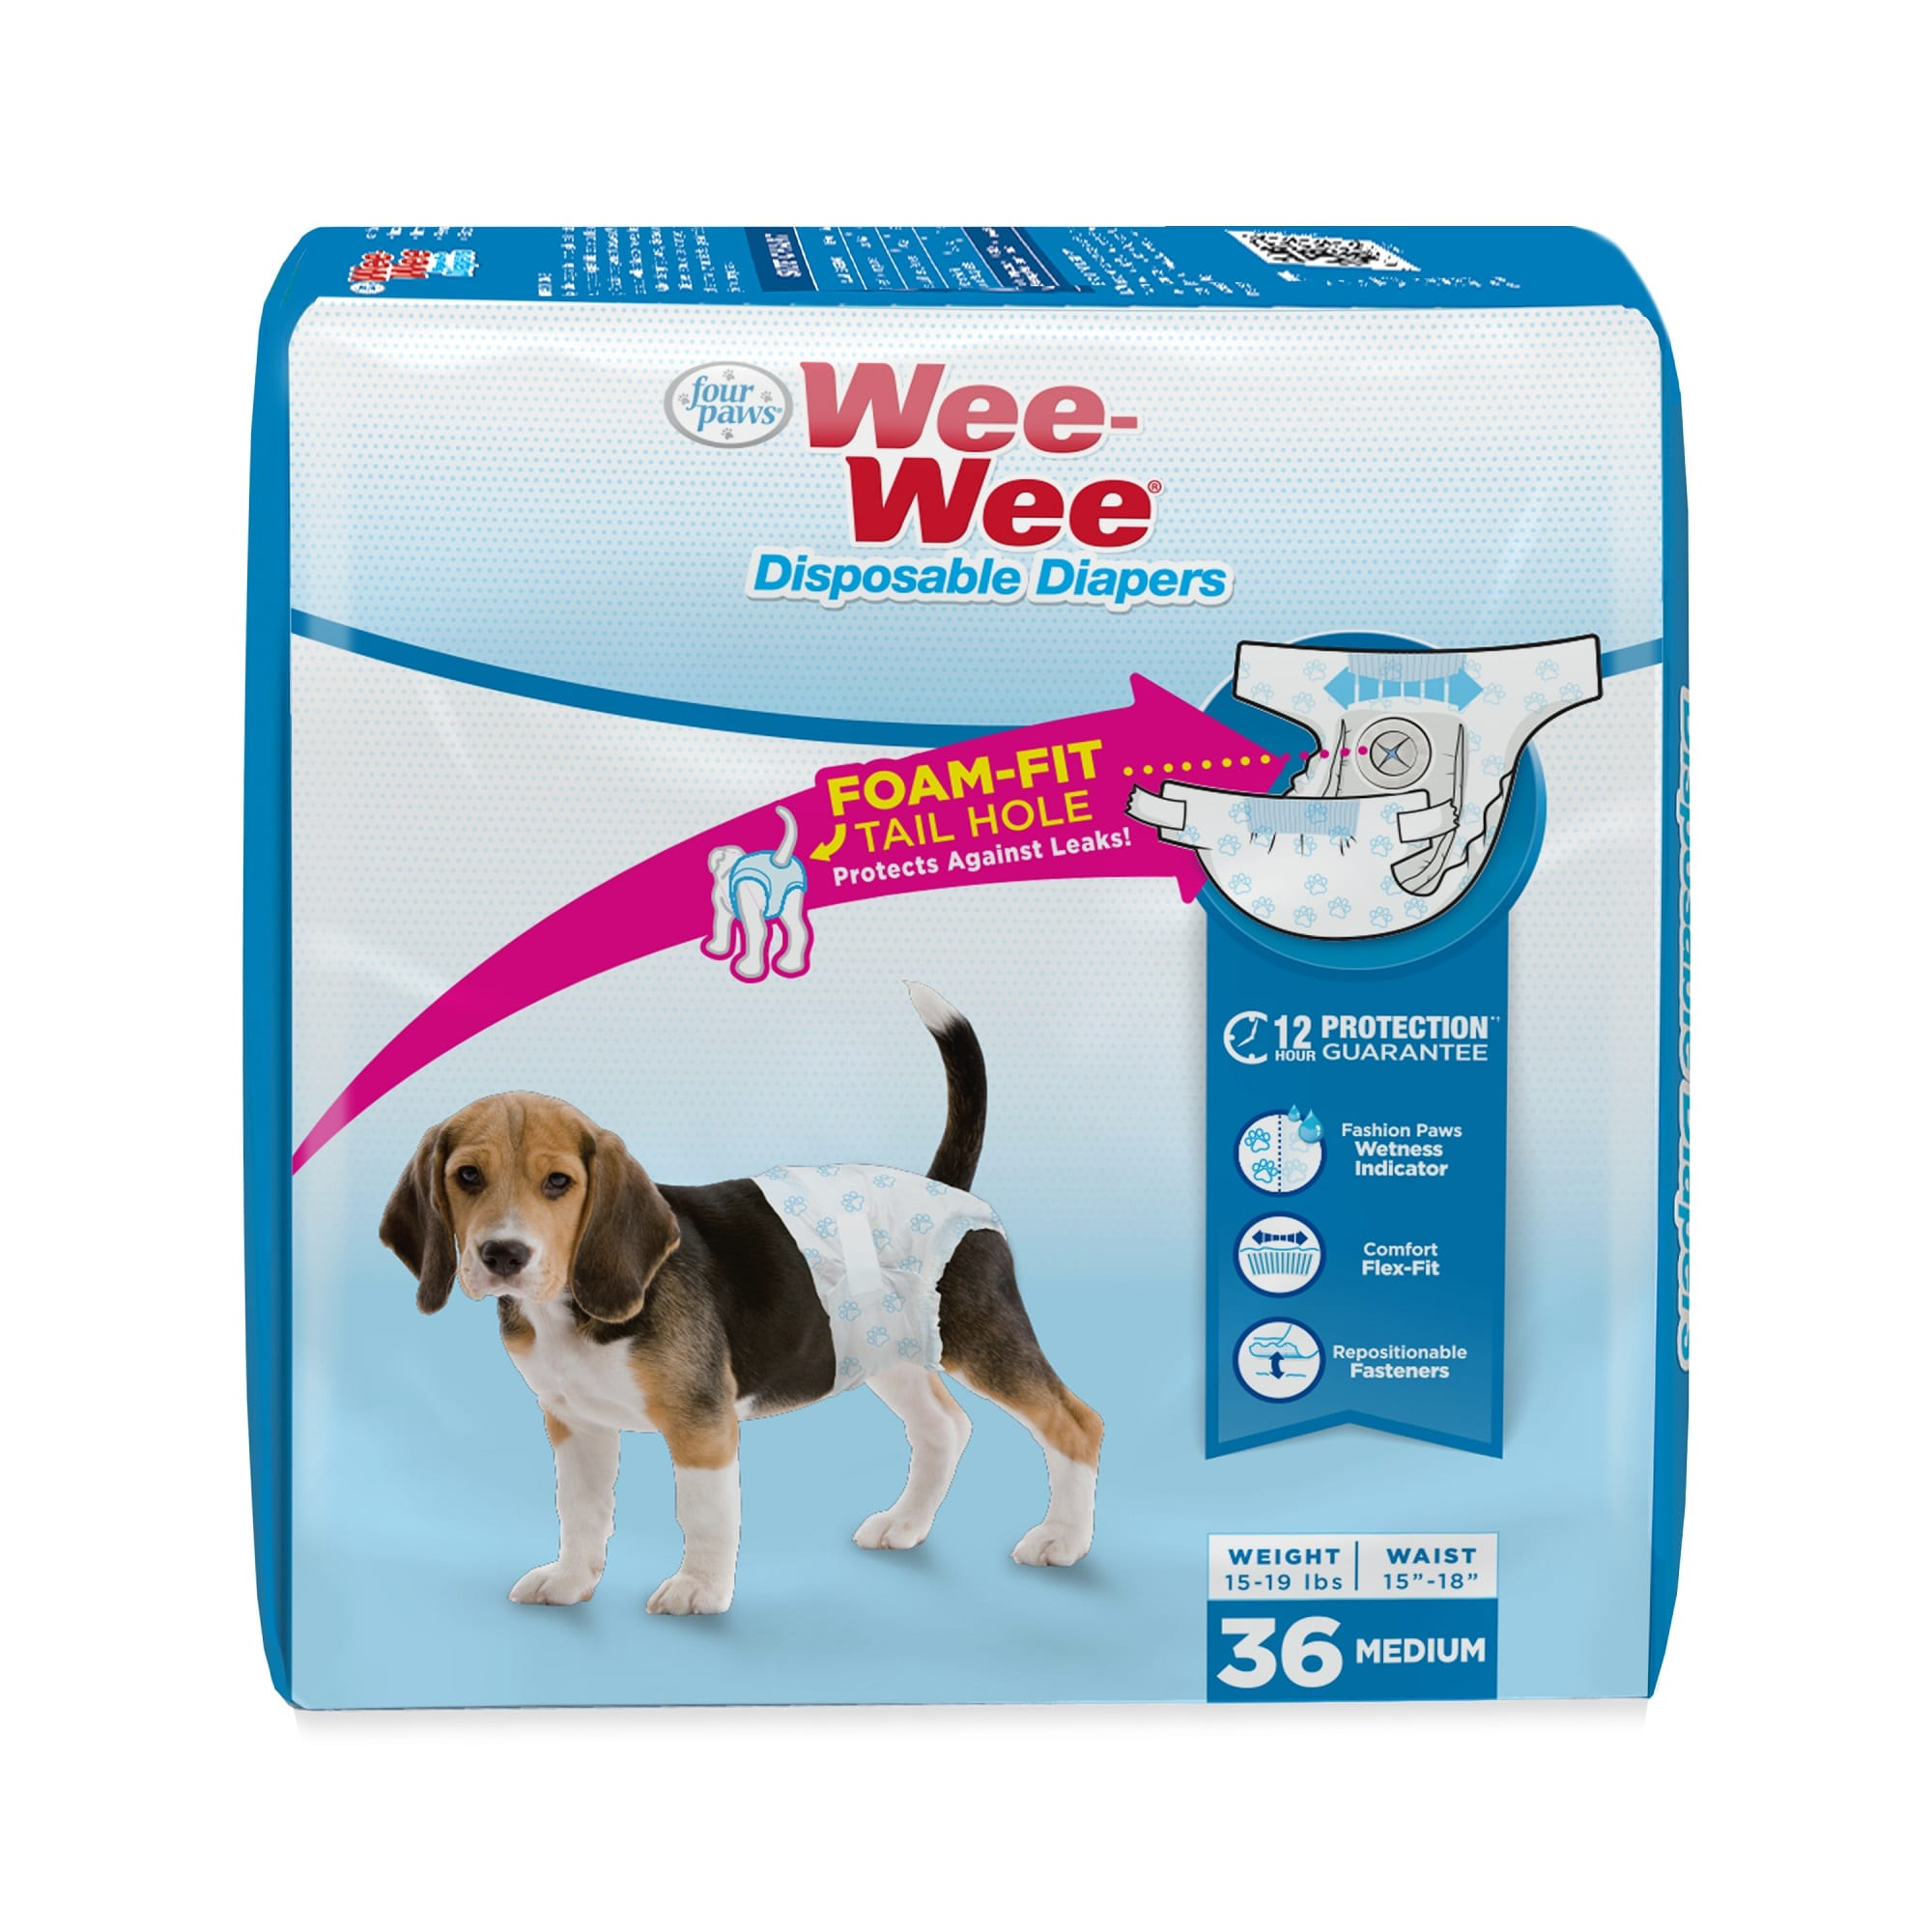 Wee-Wee Disposable Diapers for Dogs, Medium, Count of 36